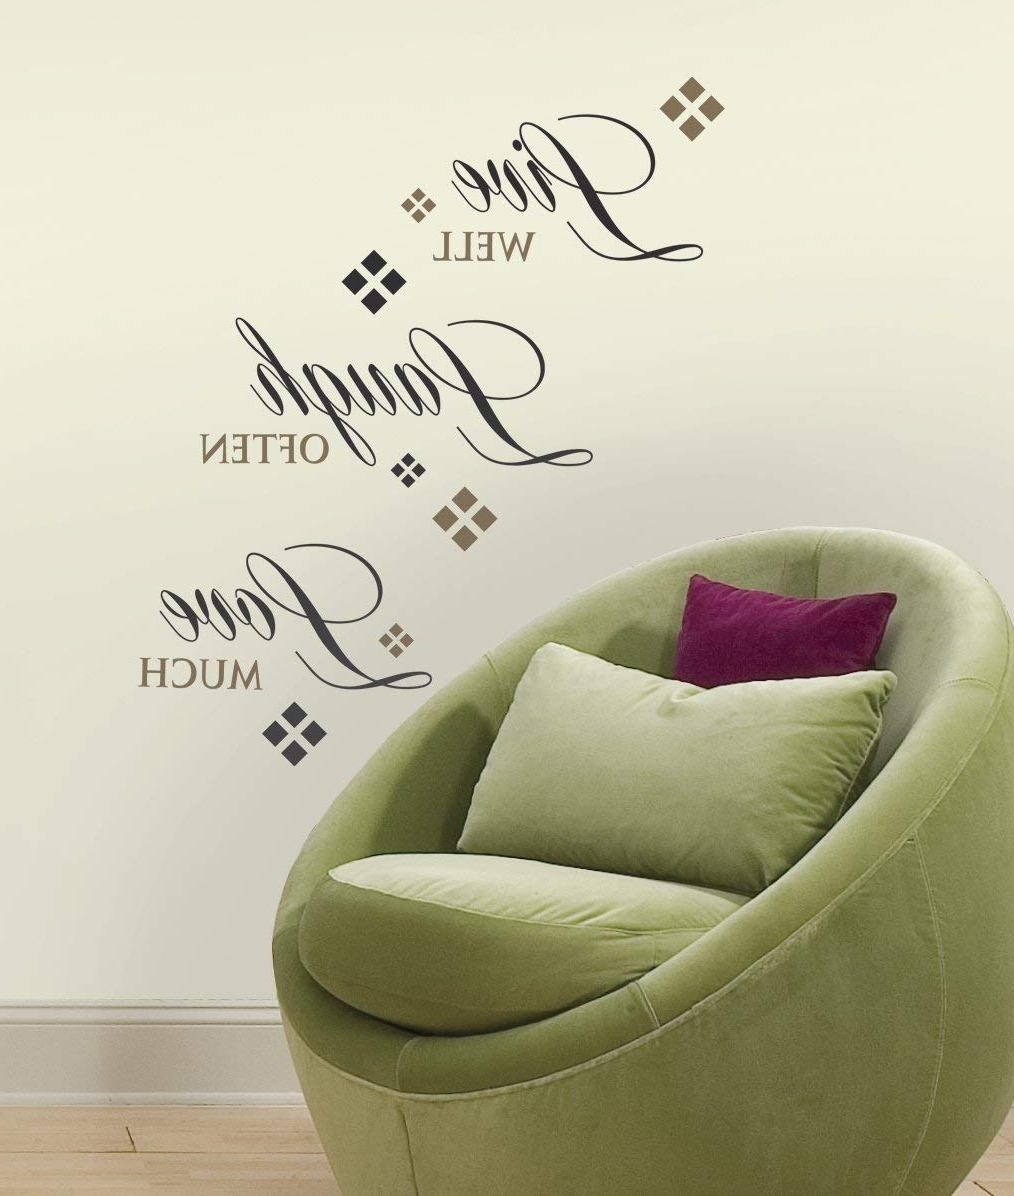 Roommates Rmk1396Scs Live, Love, Laugh Peel & Stick Wall Decals, 22 With Regard To Well Liked Stick On Wall Art (View 14 of 15)